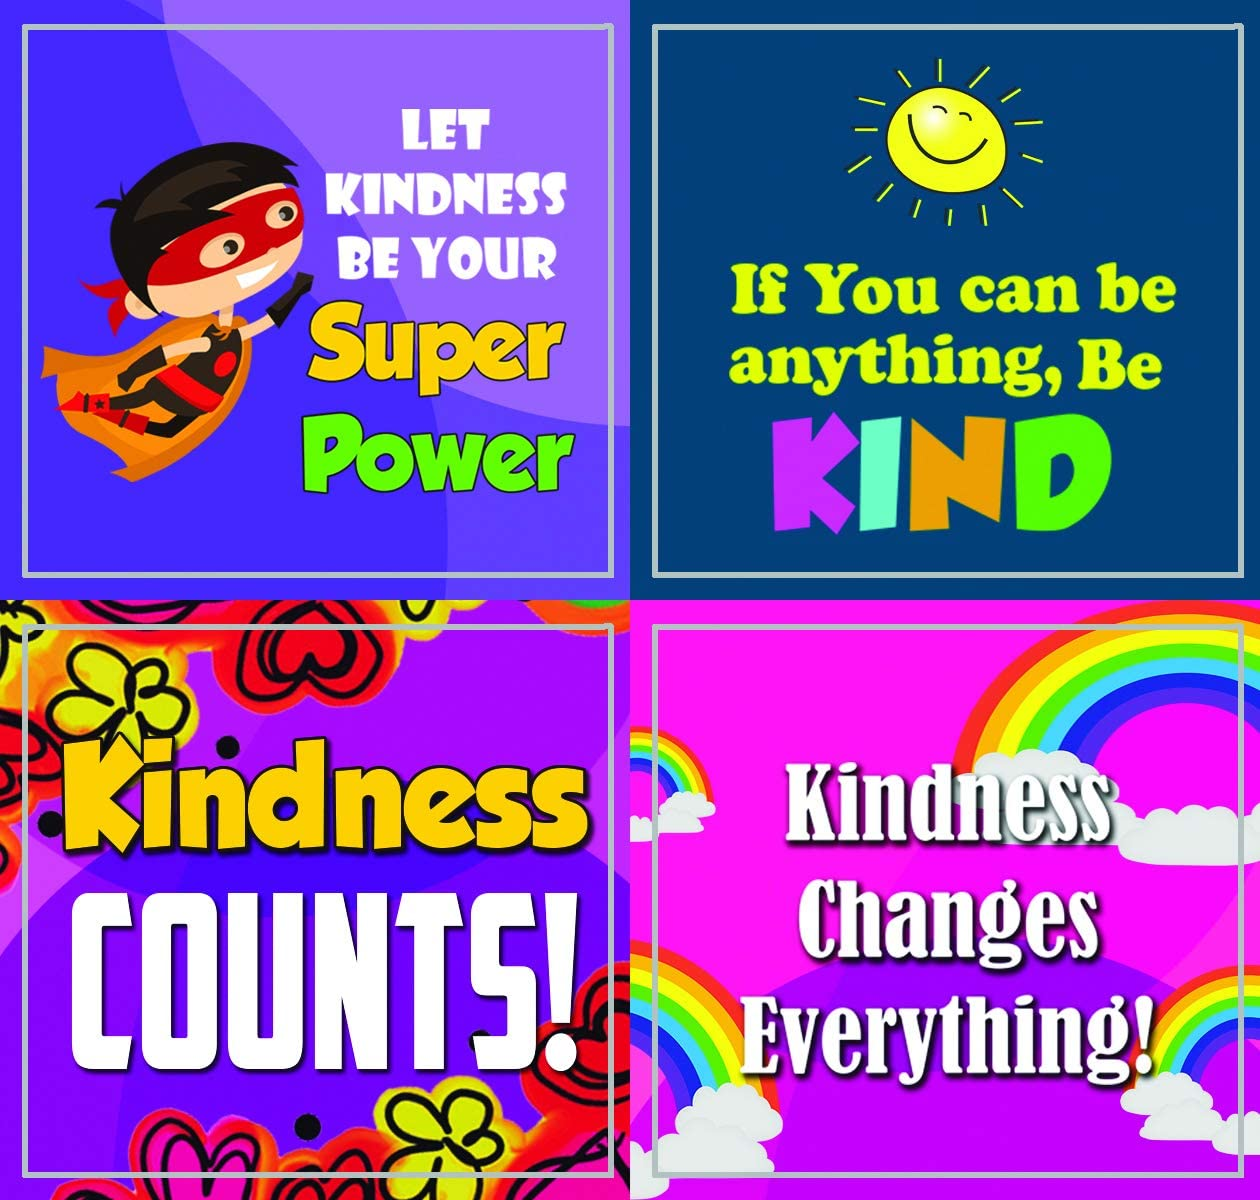 5-Sheet 5 X 12pcs Unique Personalized Themes Designs Creanoso Character Matters Stickers Flat Surface DIY Decoration Art Decal for Children Total 60 pcs Individual Small Size 2.1 x 2